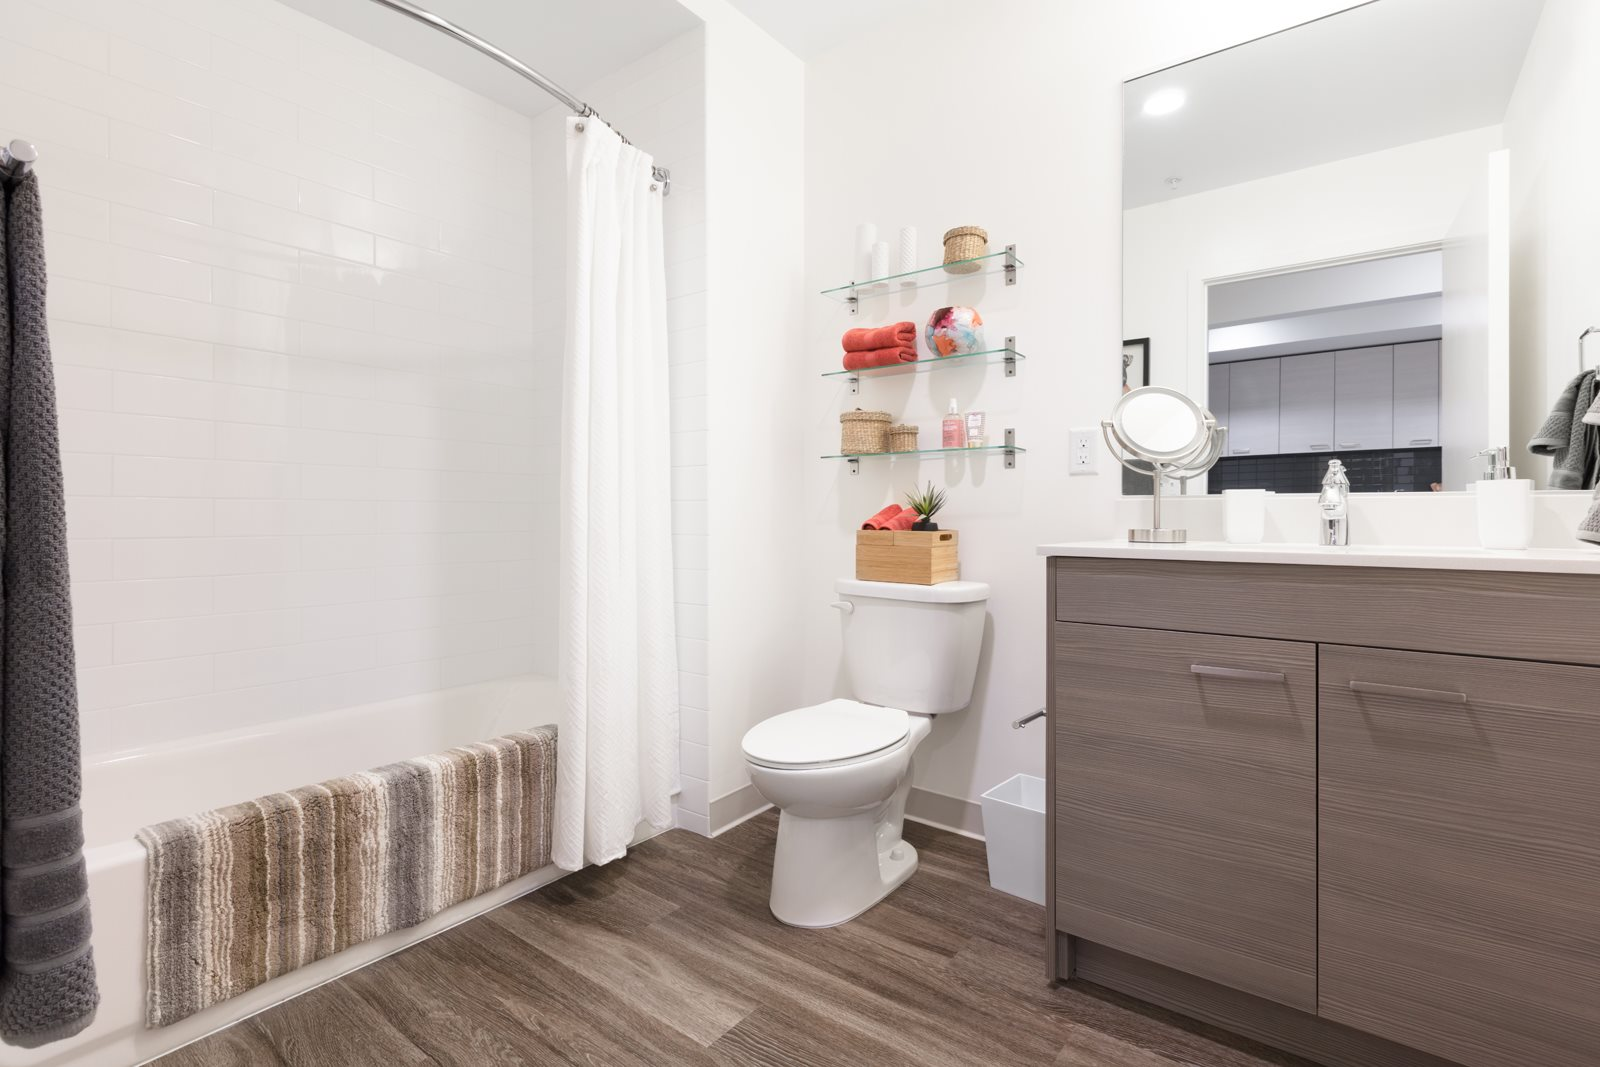 Spacious Bathroom with Modern Fixtures at Mission Bay by Windsor, 360 Berry Street,  San Francisco